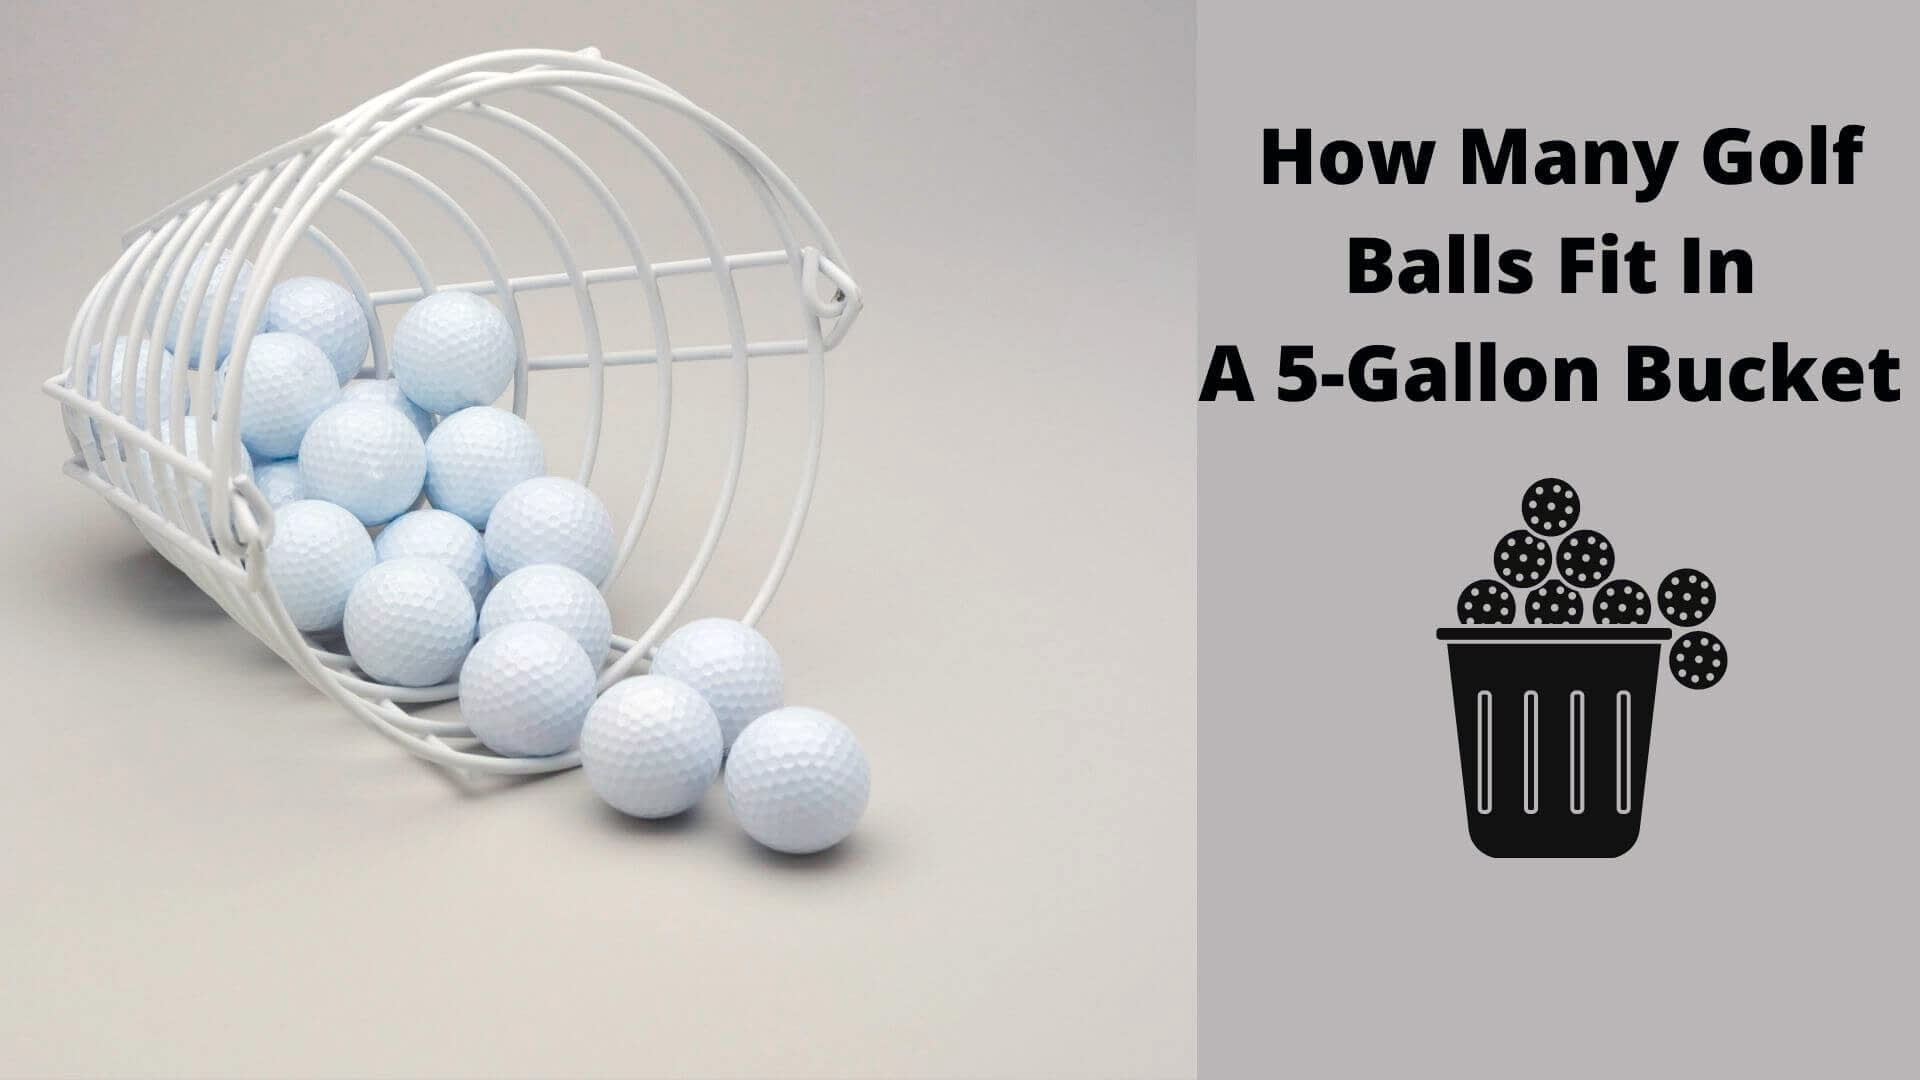 How many golf balls fit in a 5 gallon bucket